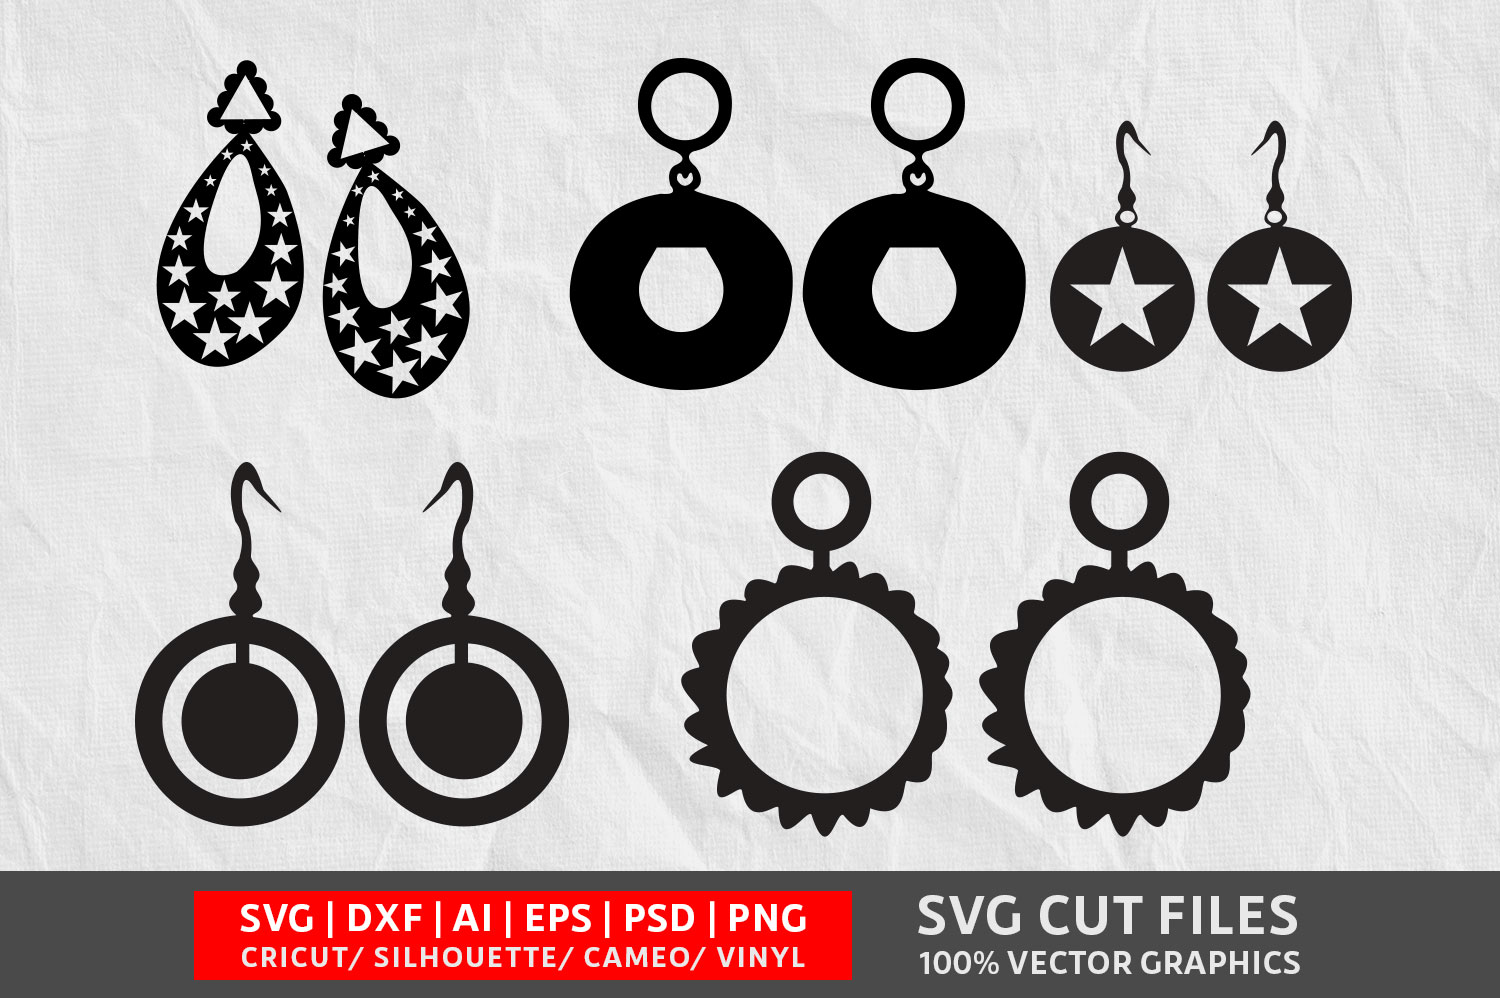 Download Free Earrings Graphic By Design Palace Creative Fabrica for Cricut Explore, Silhouette and other cutting machines.